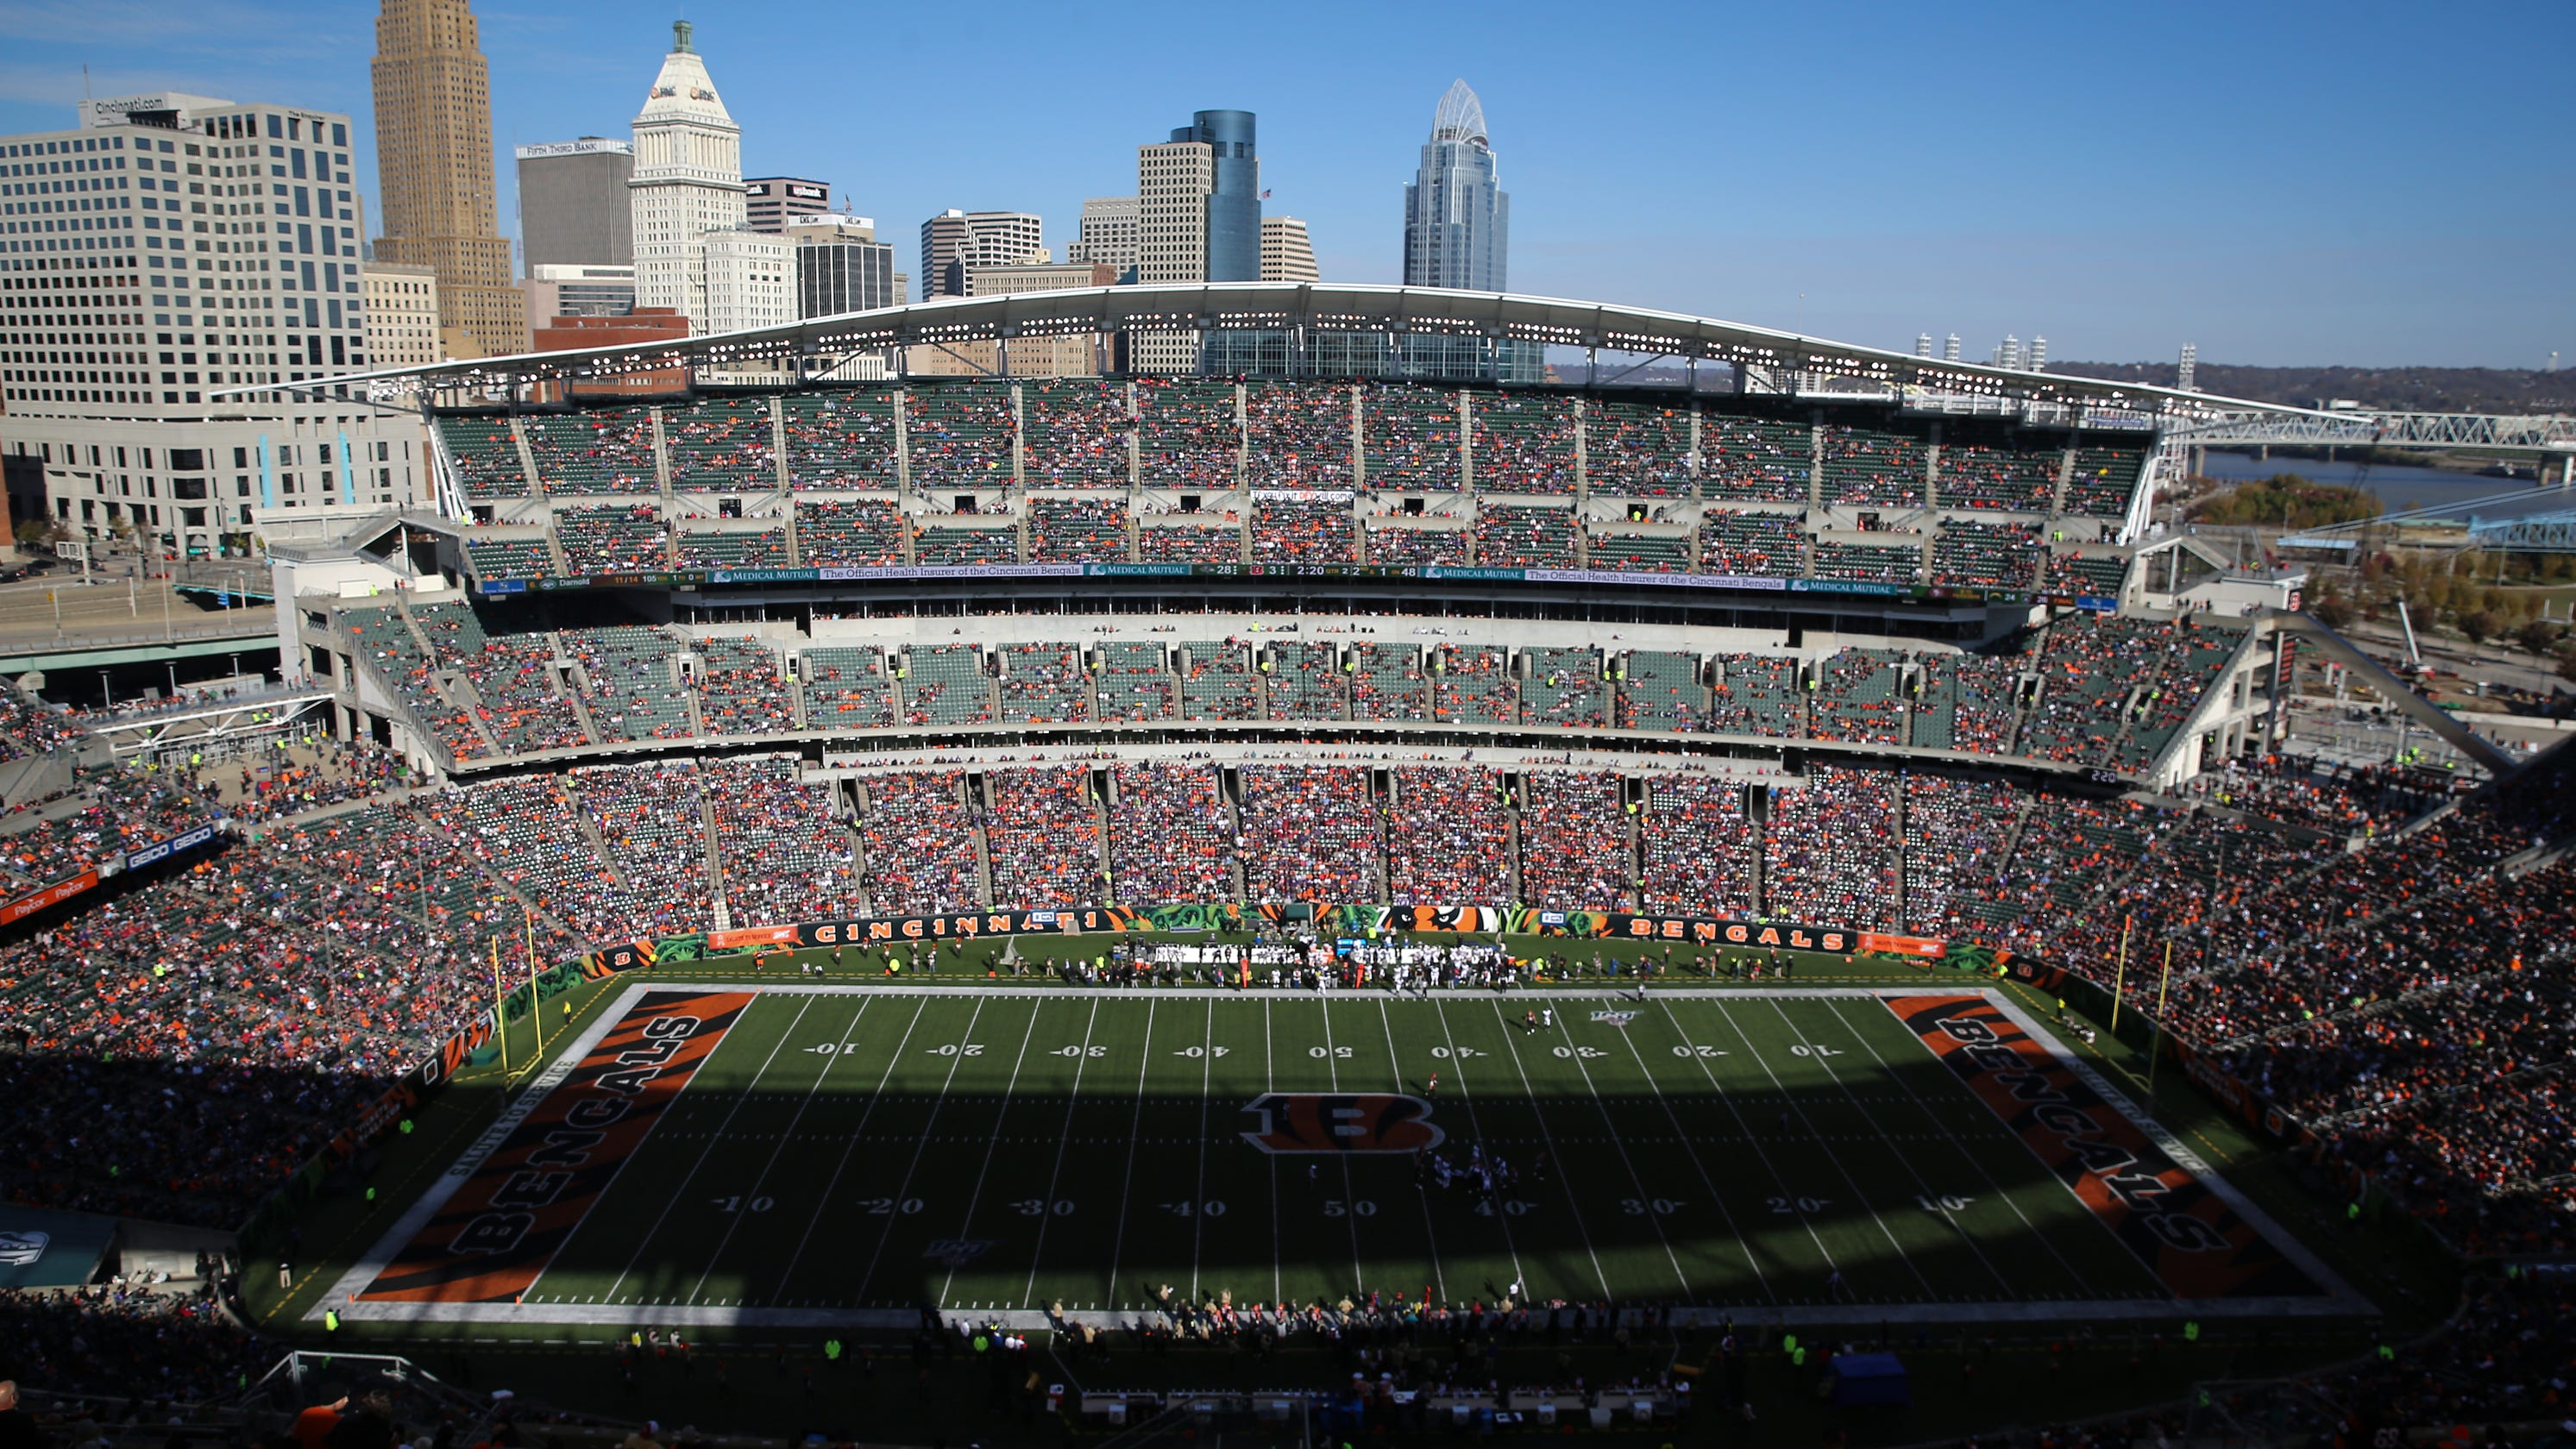 Ohio to allow limited number of fans at four Bengals and Browns games